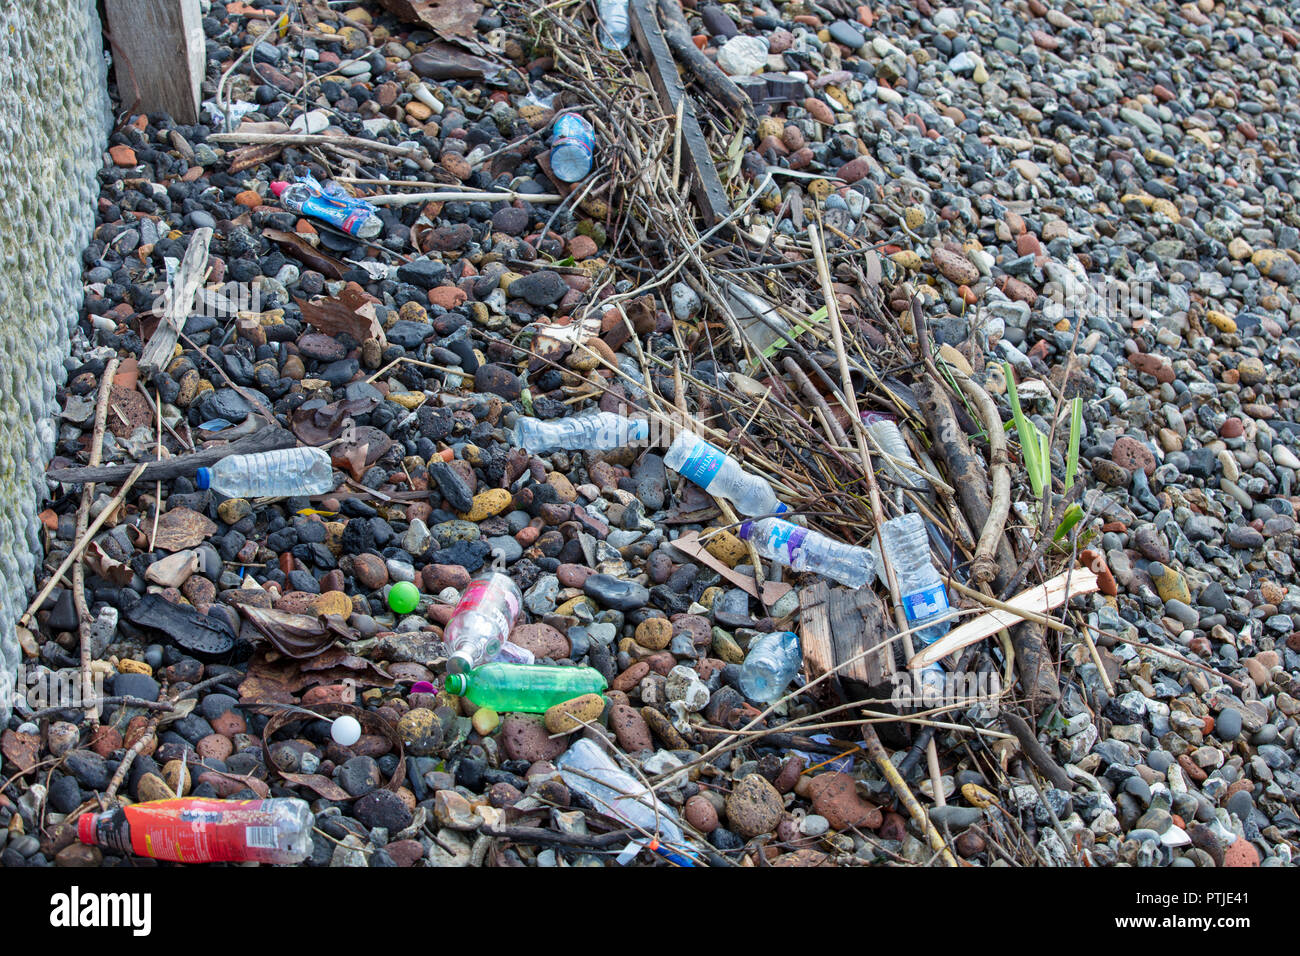 River Thames stone beach in London, GB. A large collection of plastic bottles polluting and contaminating the beach, water and fish life in the river. - Stock Image